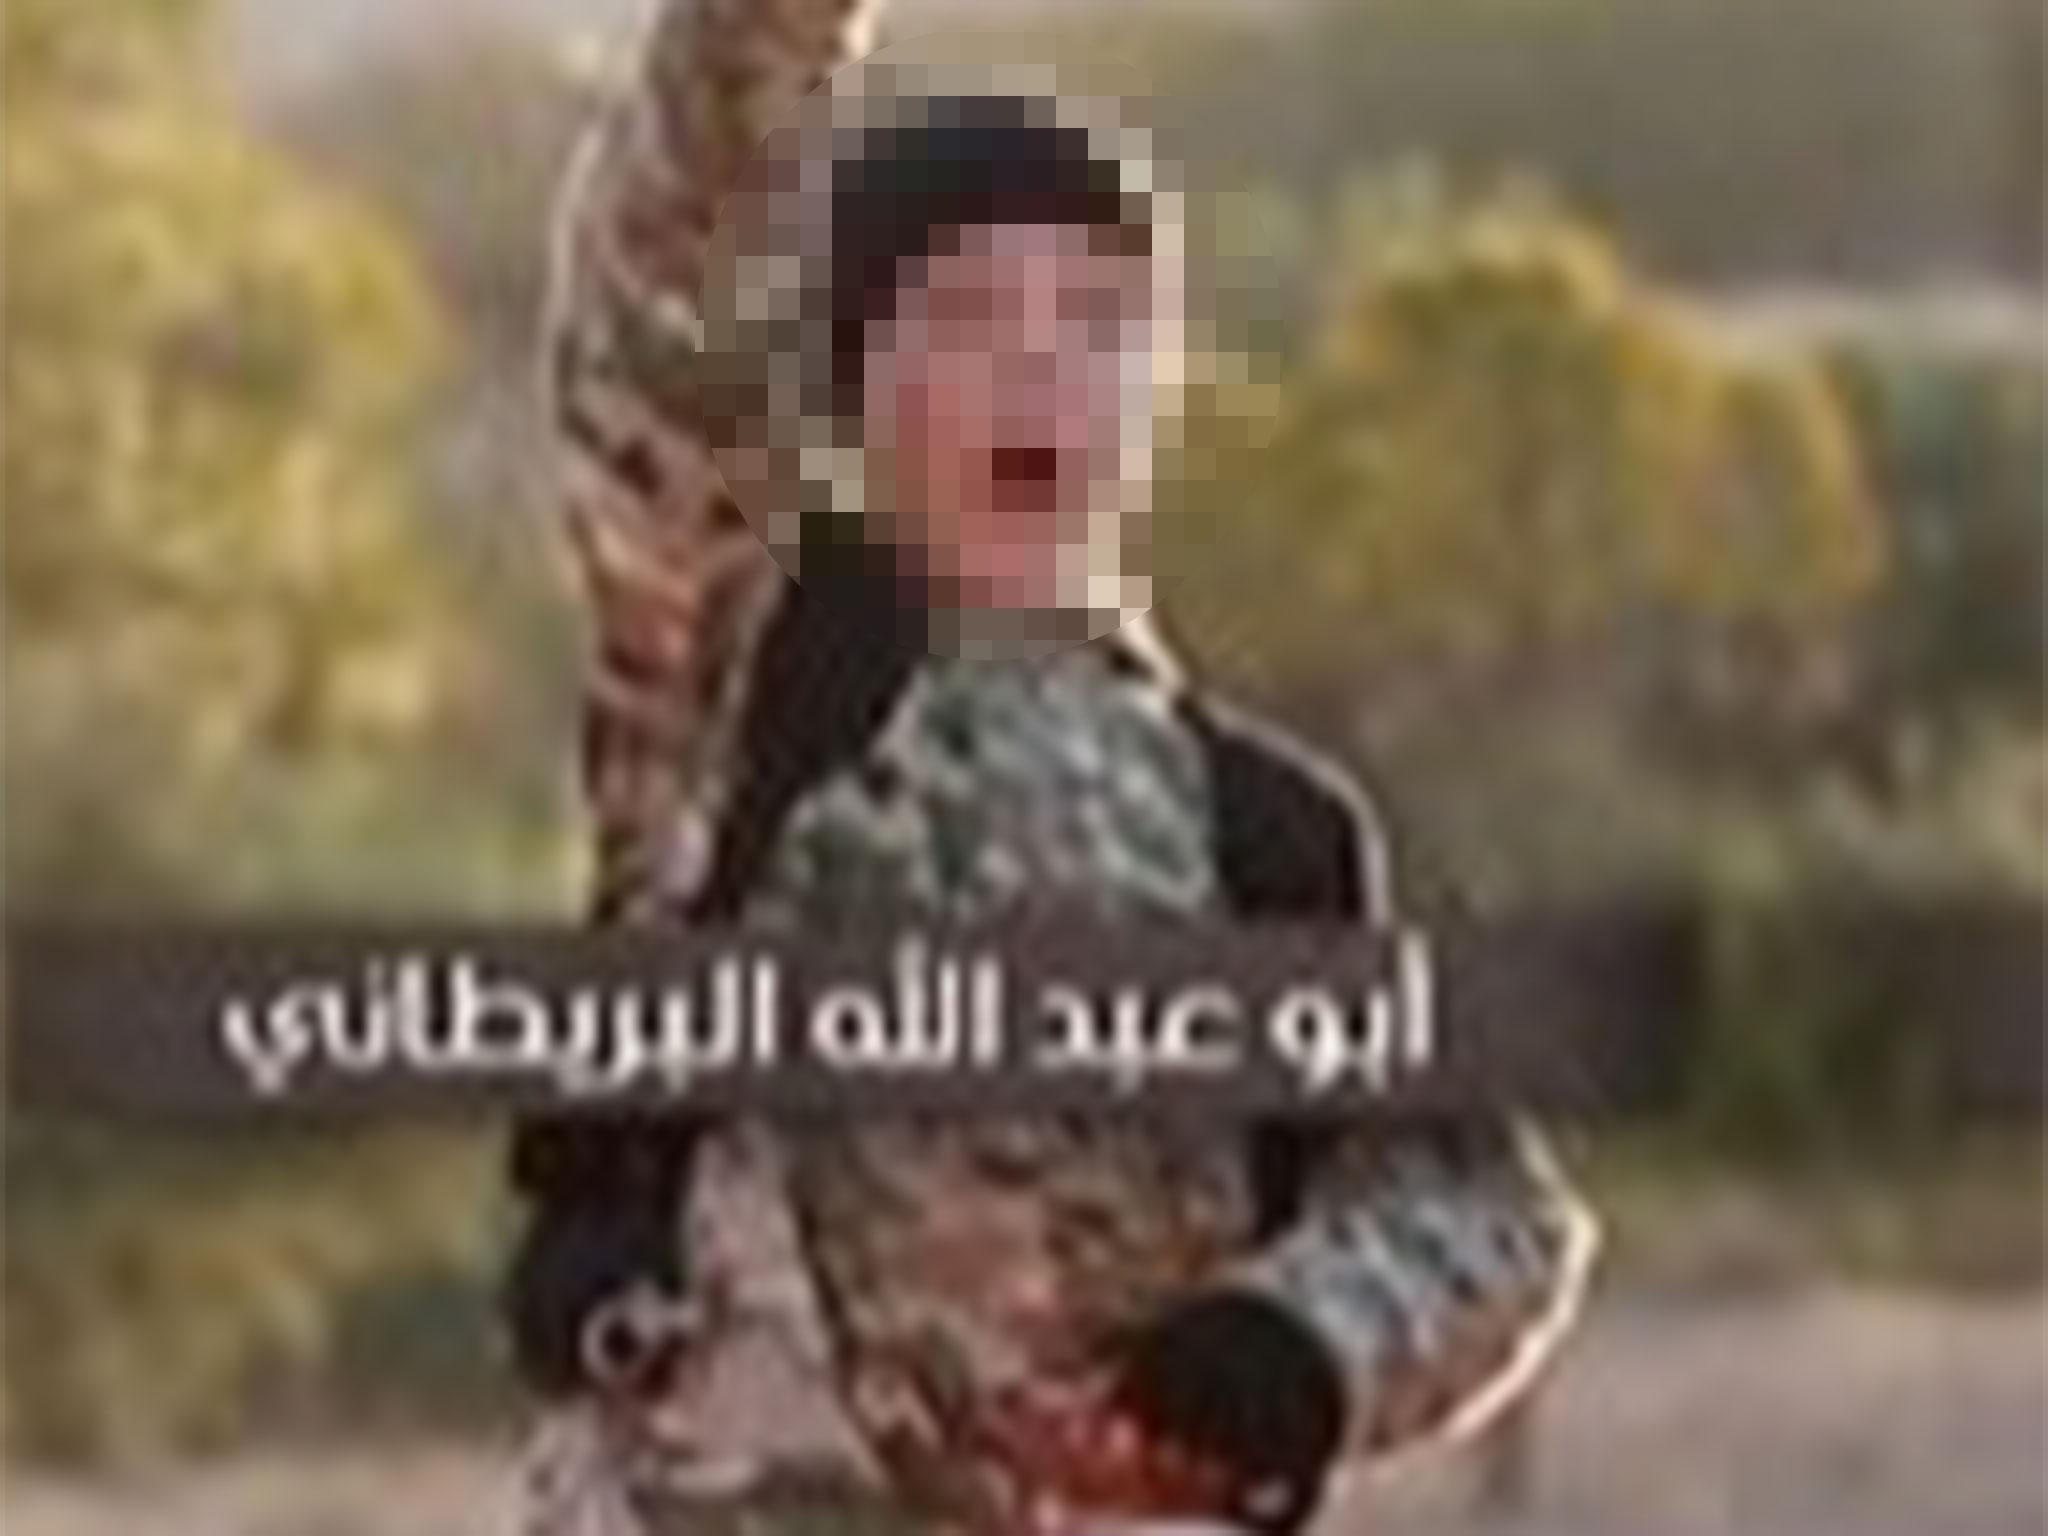 Isis execution video: British boy filmed killing man identified by father as '13-year-old son of Sally Jones'